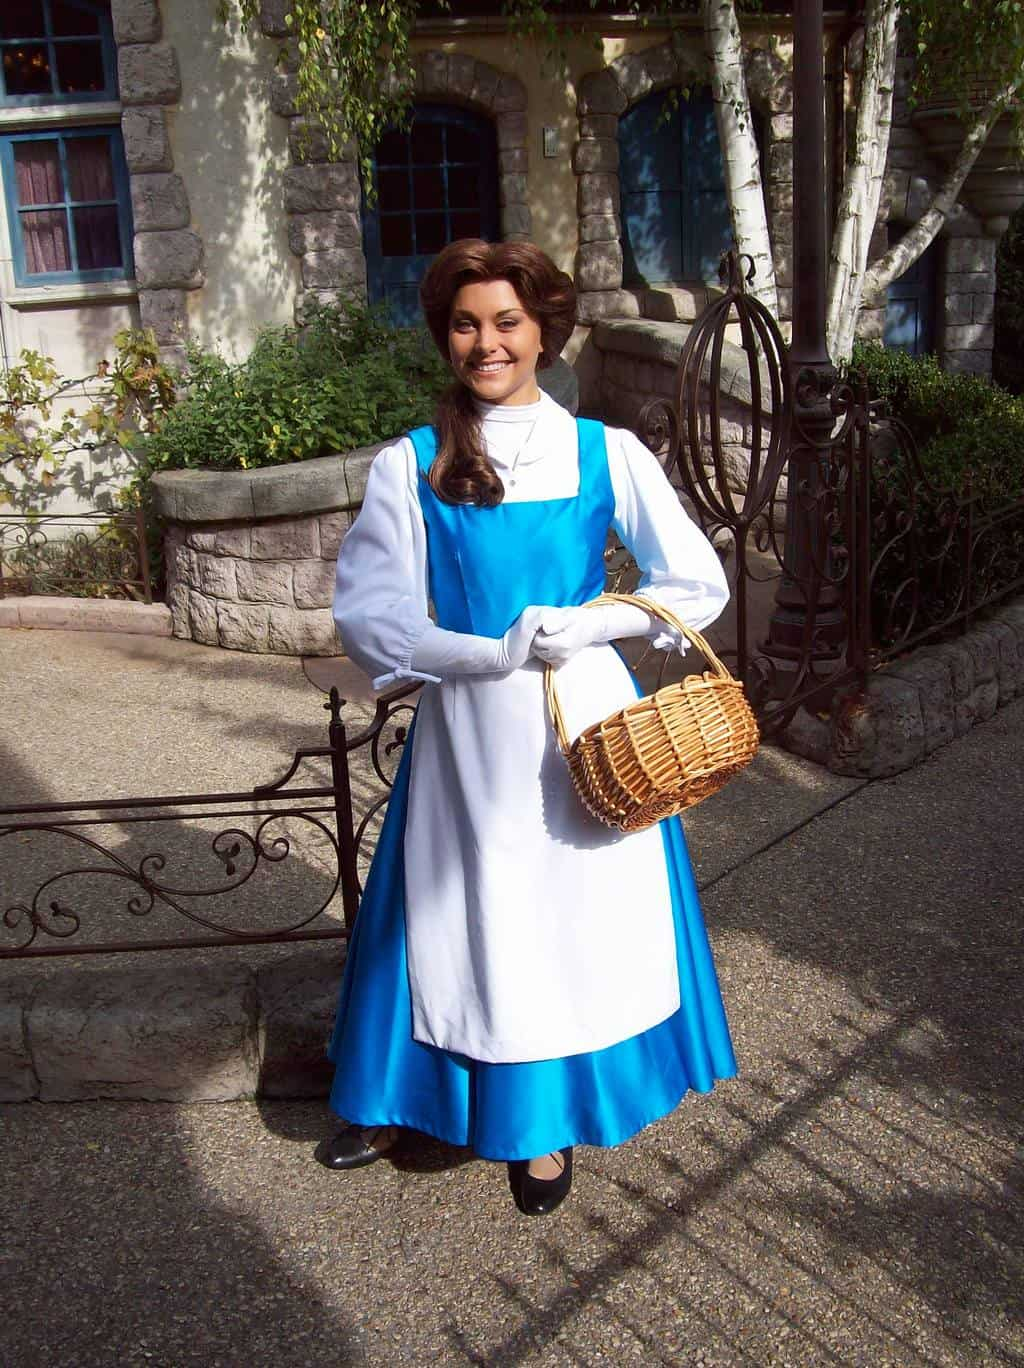 Belle in her village outfit. She used to walk around Fantasyland but nowadays does Meet'n'Greets at the Princess Pavilion.